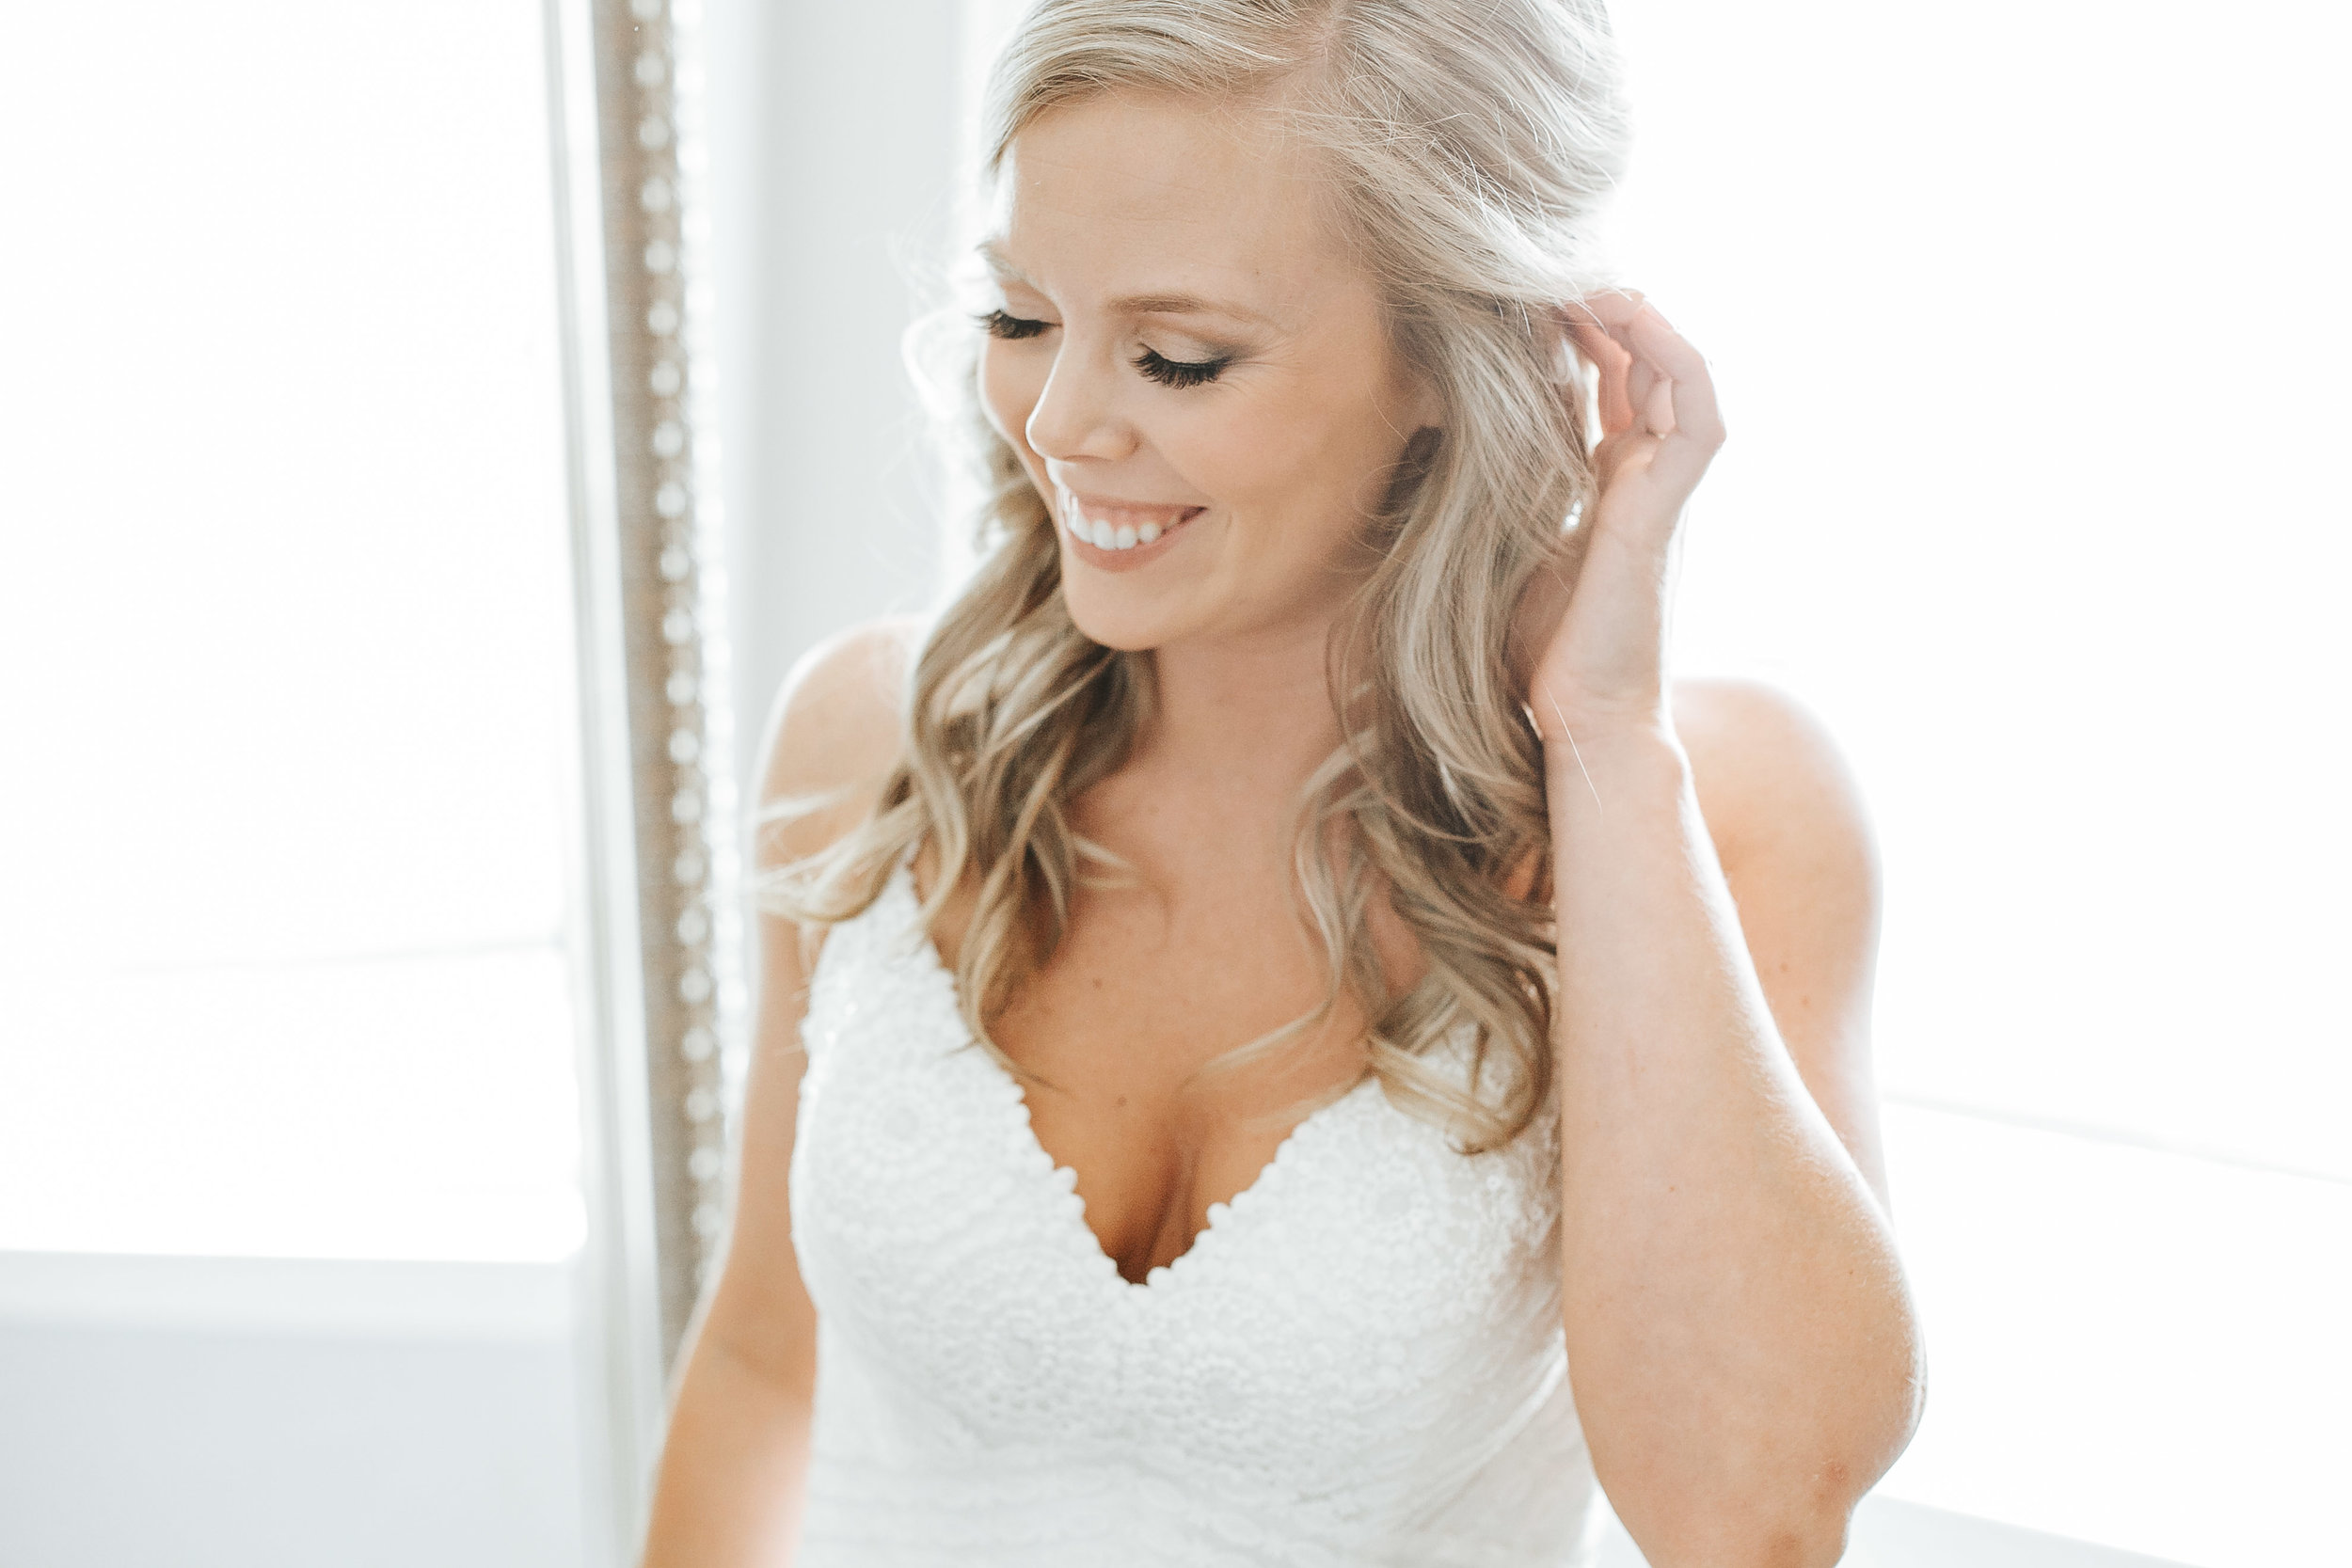 michellebrandonwedding-6.jpg